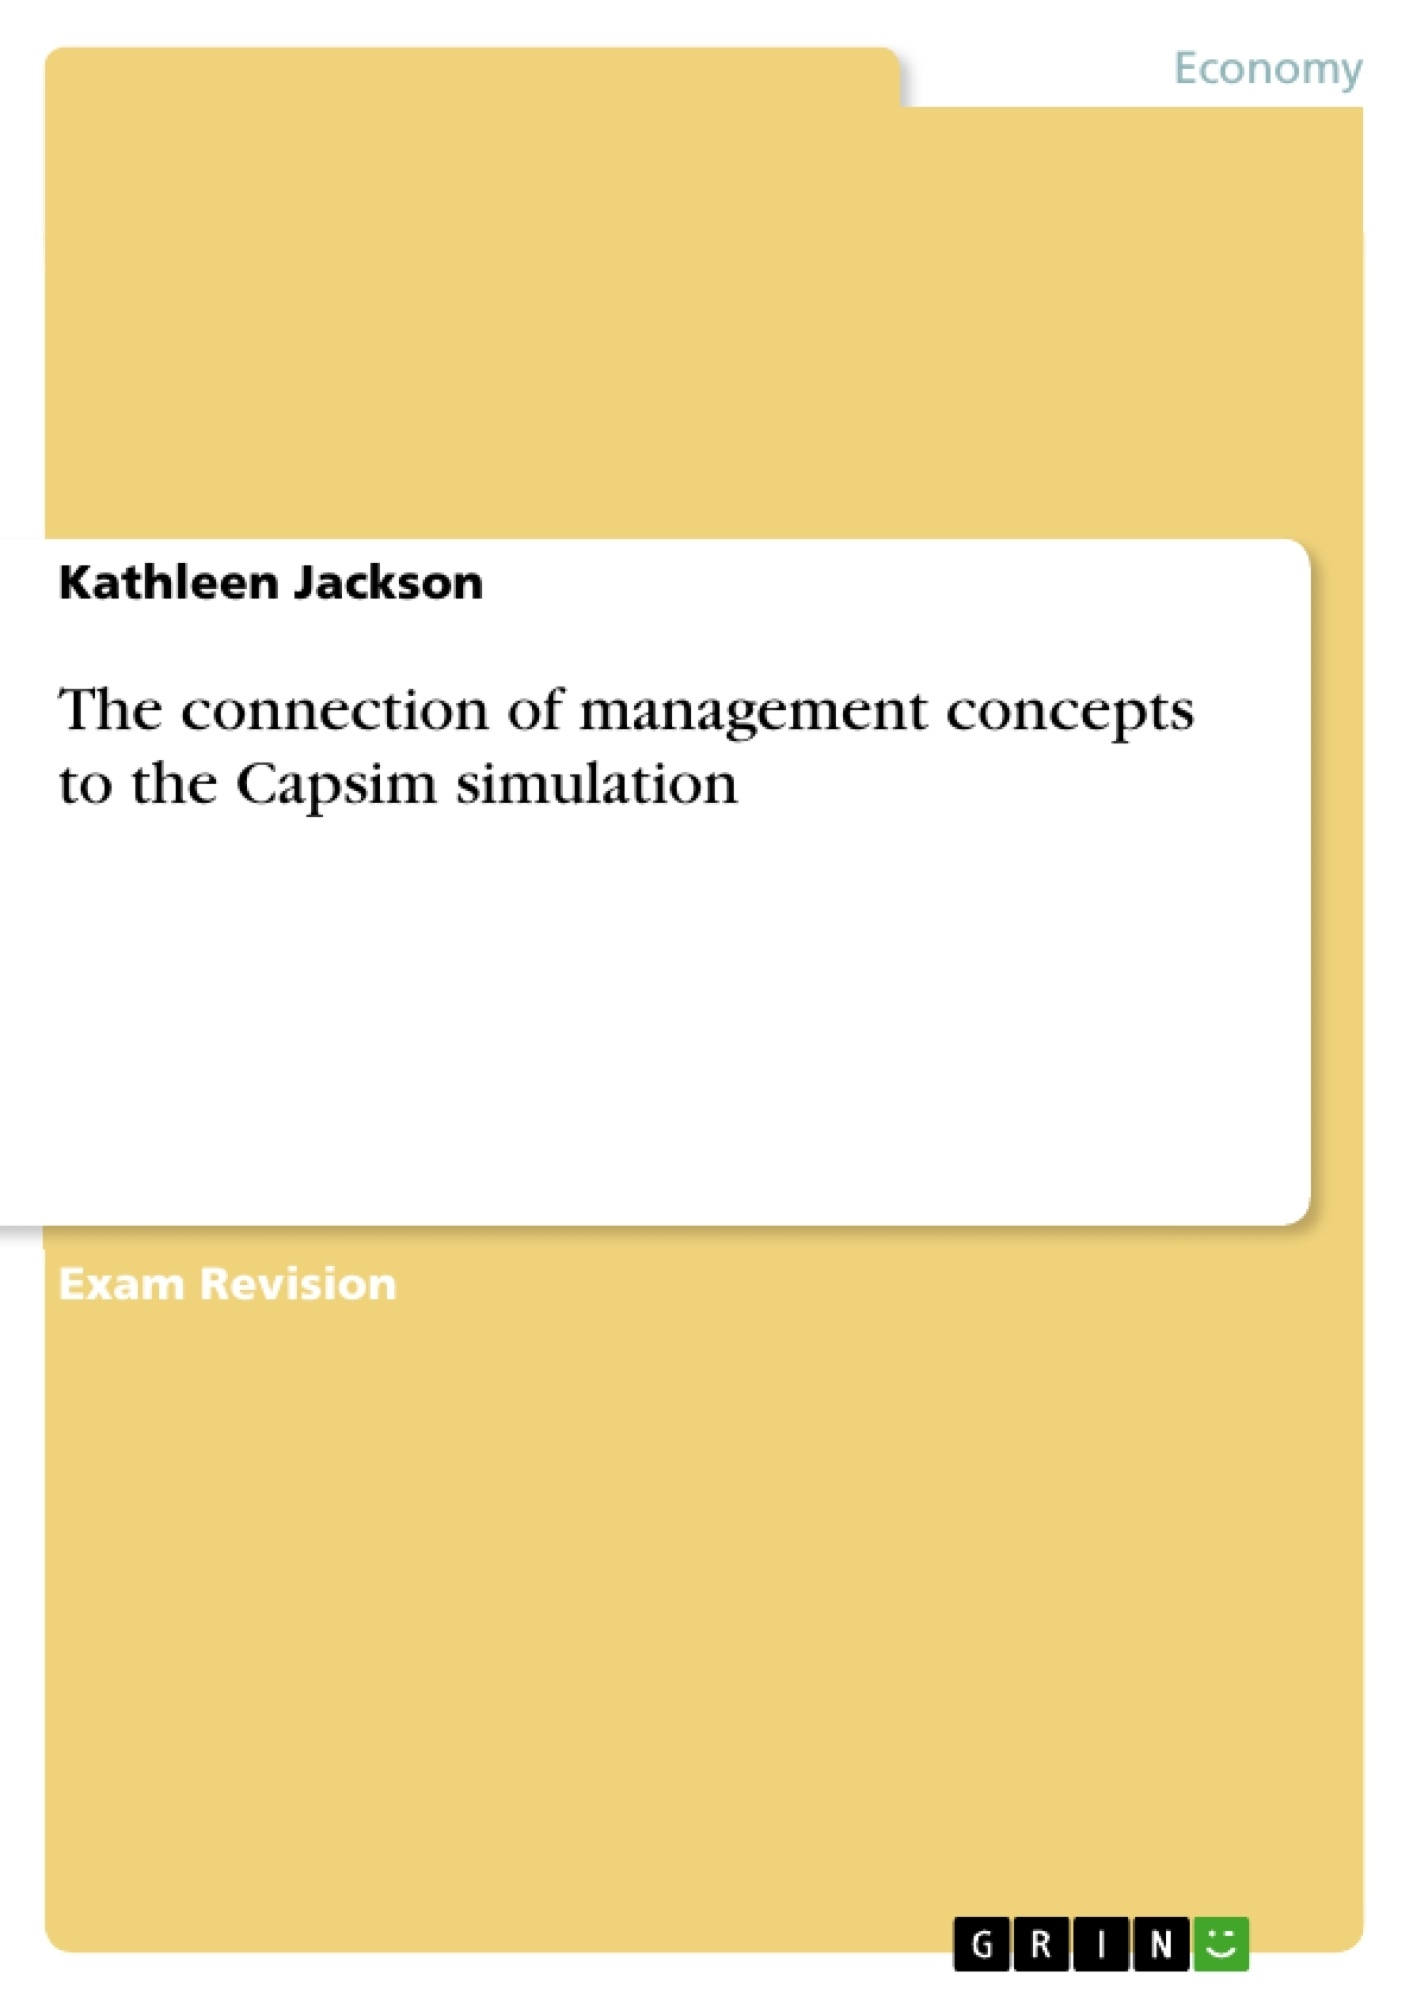 Title: The connection of management concepts to the Capsim simulation